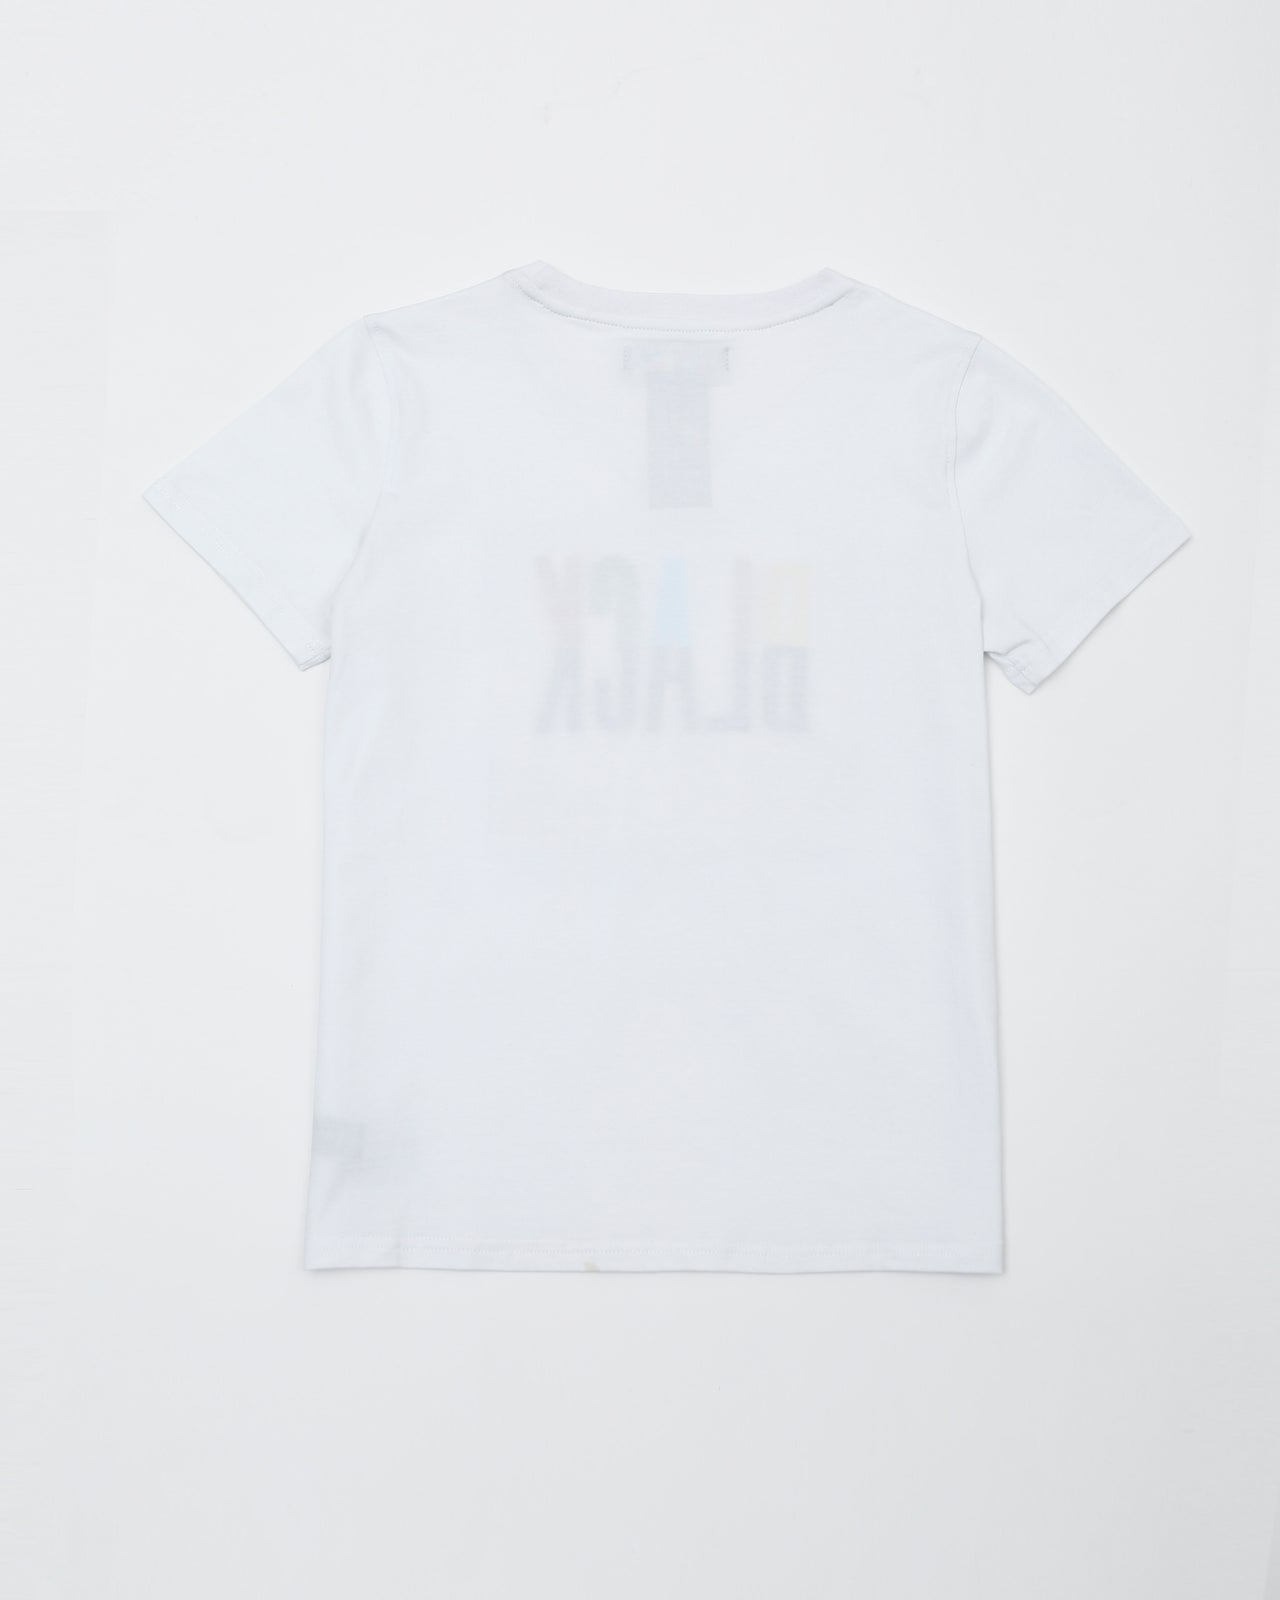 Black Pyramid Kids Tee - Color: White